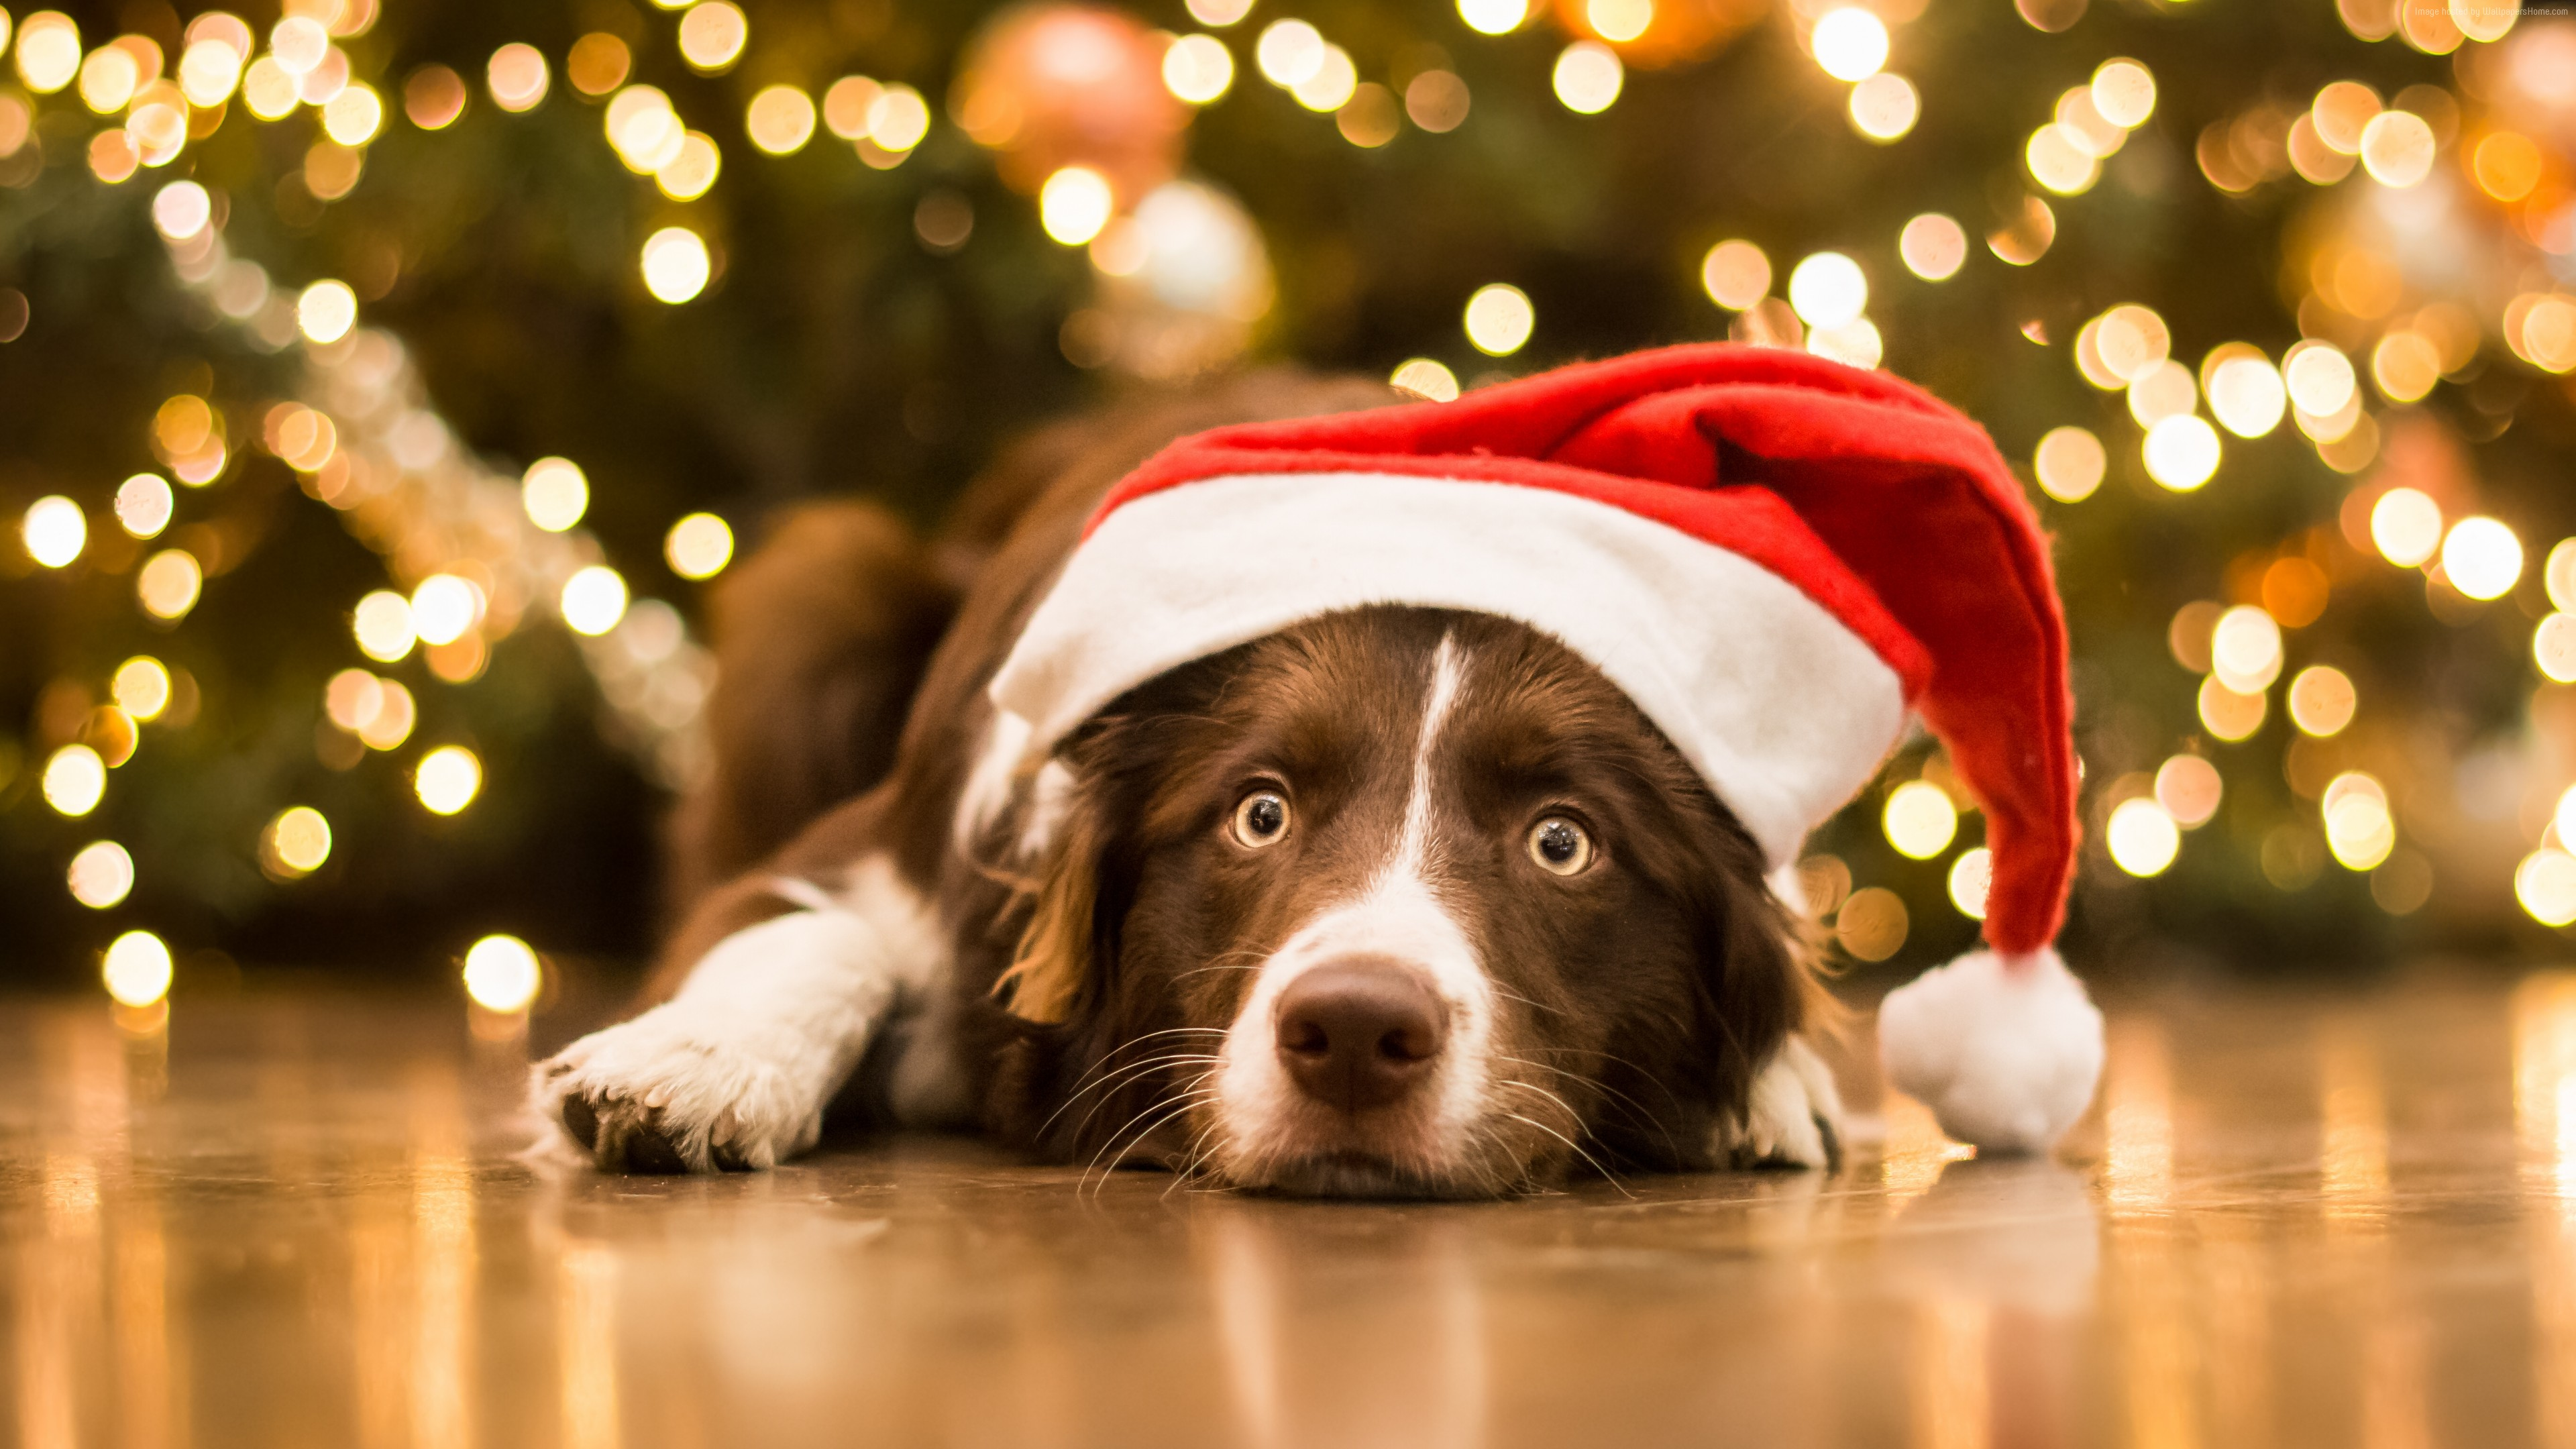 Wallpaper Christmas, New Year, dog, cute animals, 5k, Holidays